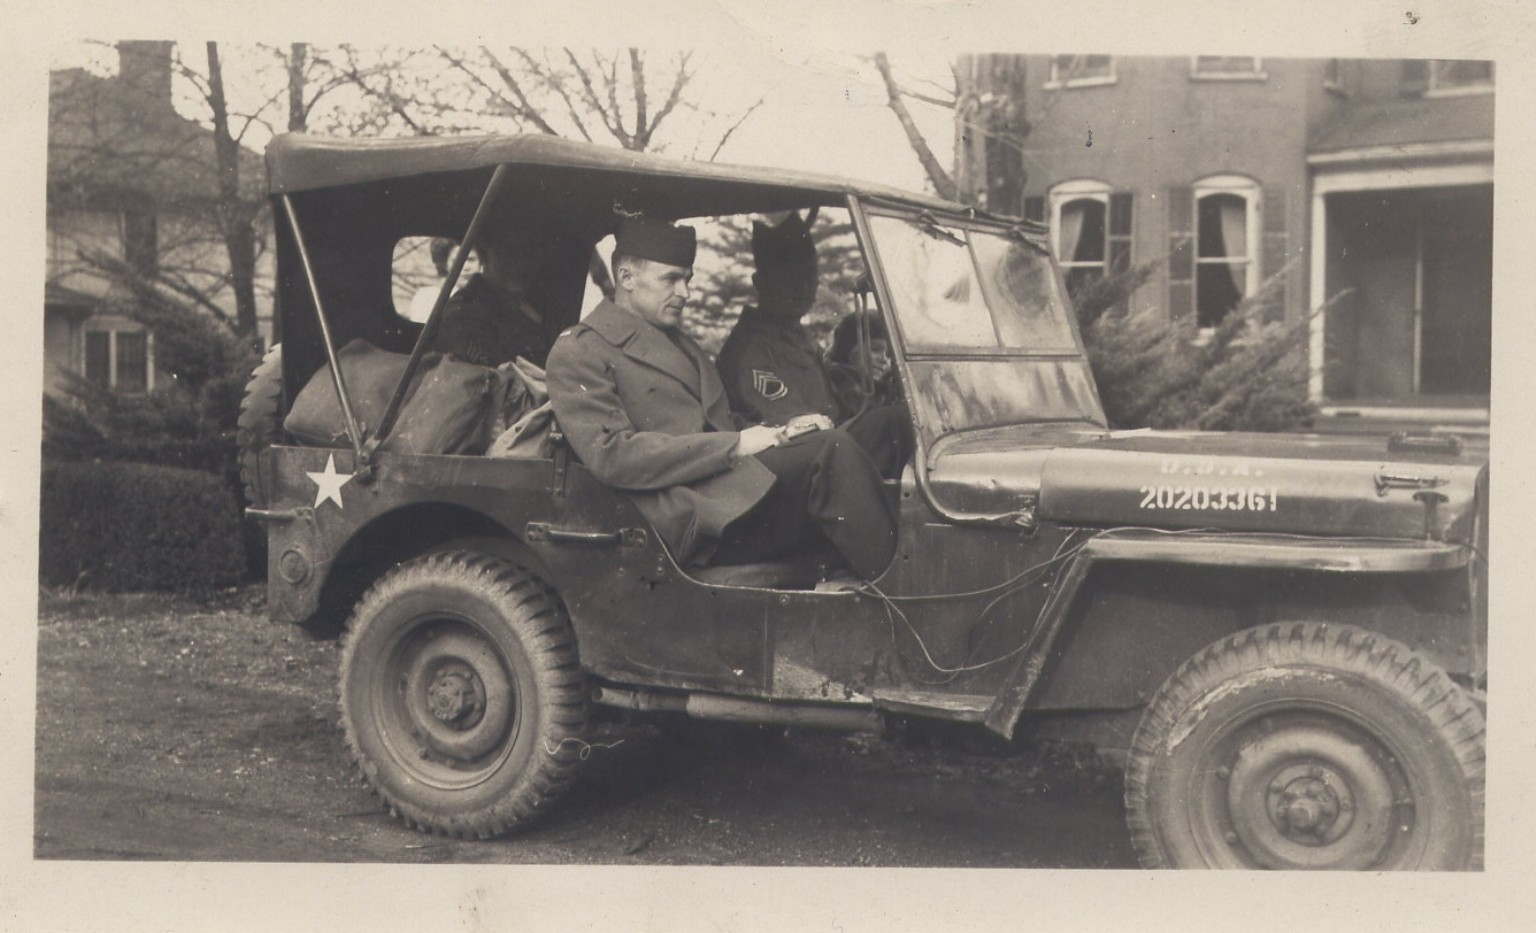 willys-jeep-with-officer.jpg